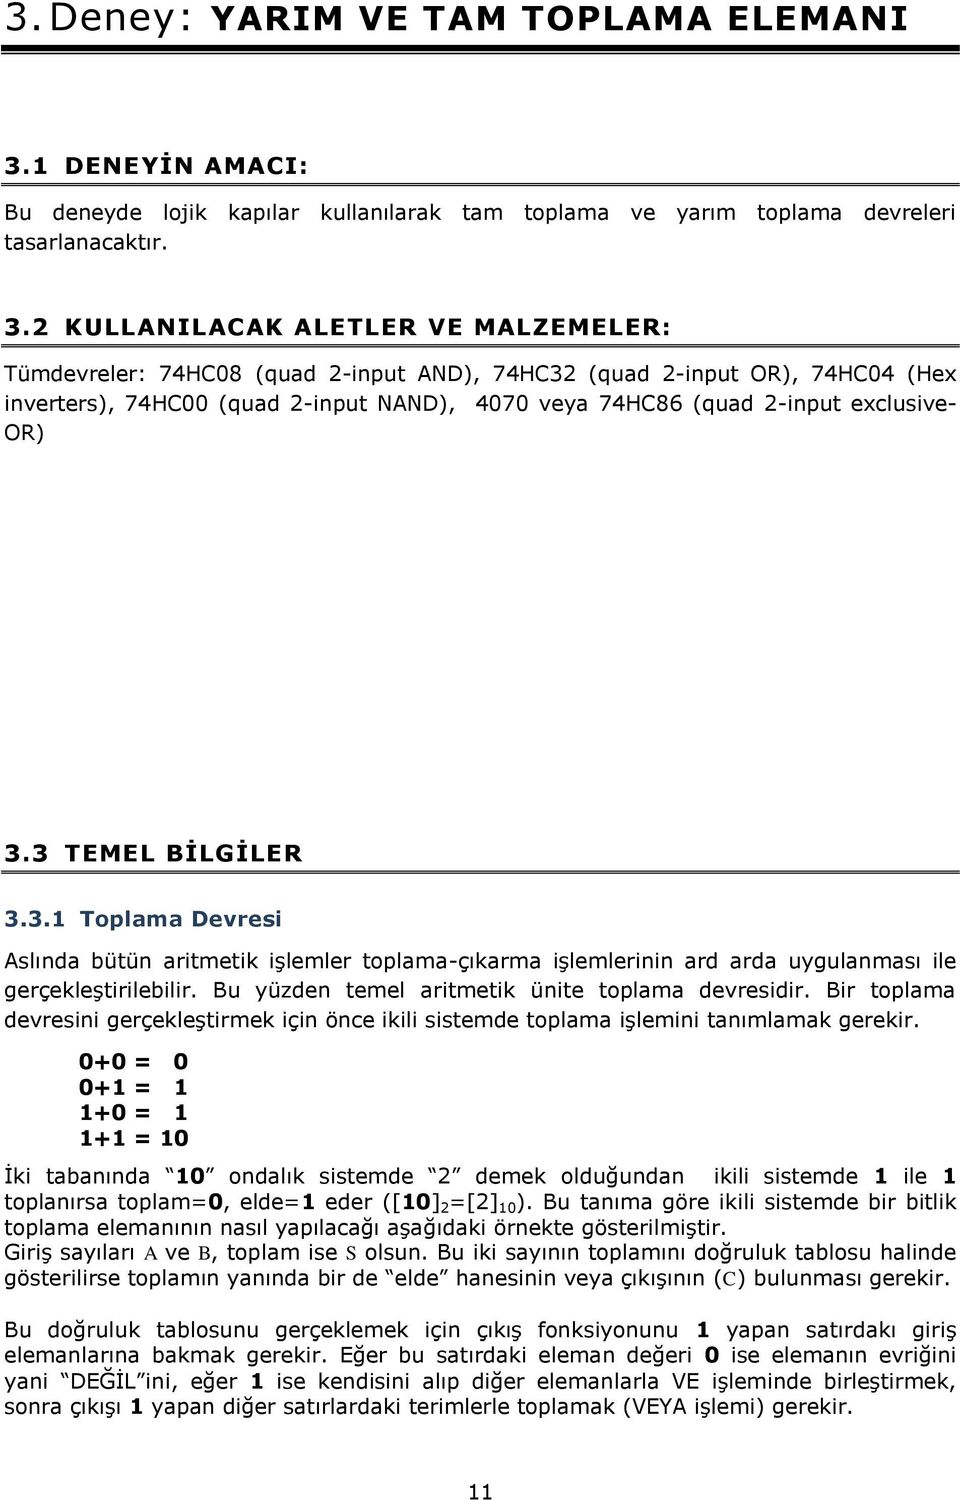 2 KULLANILACAK ALETLER VE MALZEMELER: Tümdevreler: 74HC8 (quad 2-input AND), 74HC32 (quad 2-input OR), 74HC4 (Hex inverters), 74HC (quad 2-input NAND), 47 veya 74HC86 (quad 2-input exclusive- OR) 3.